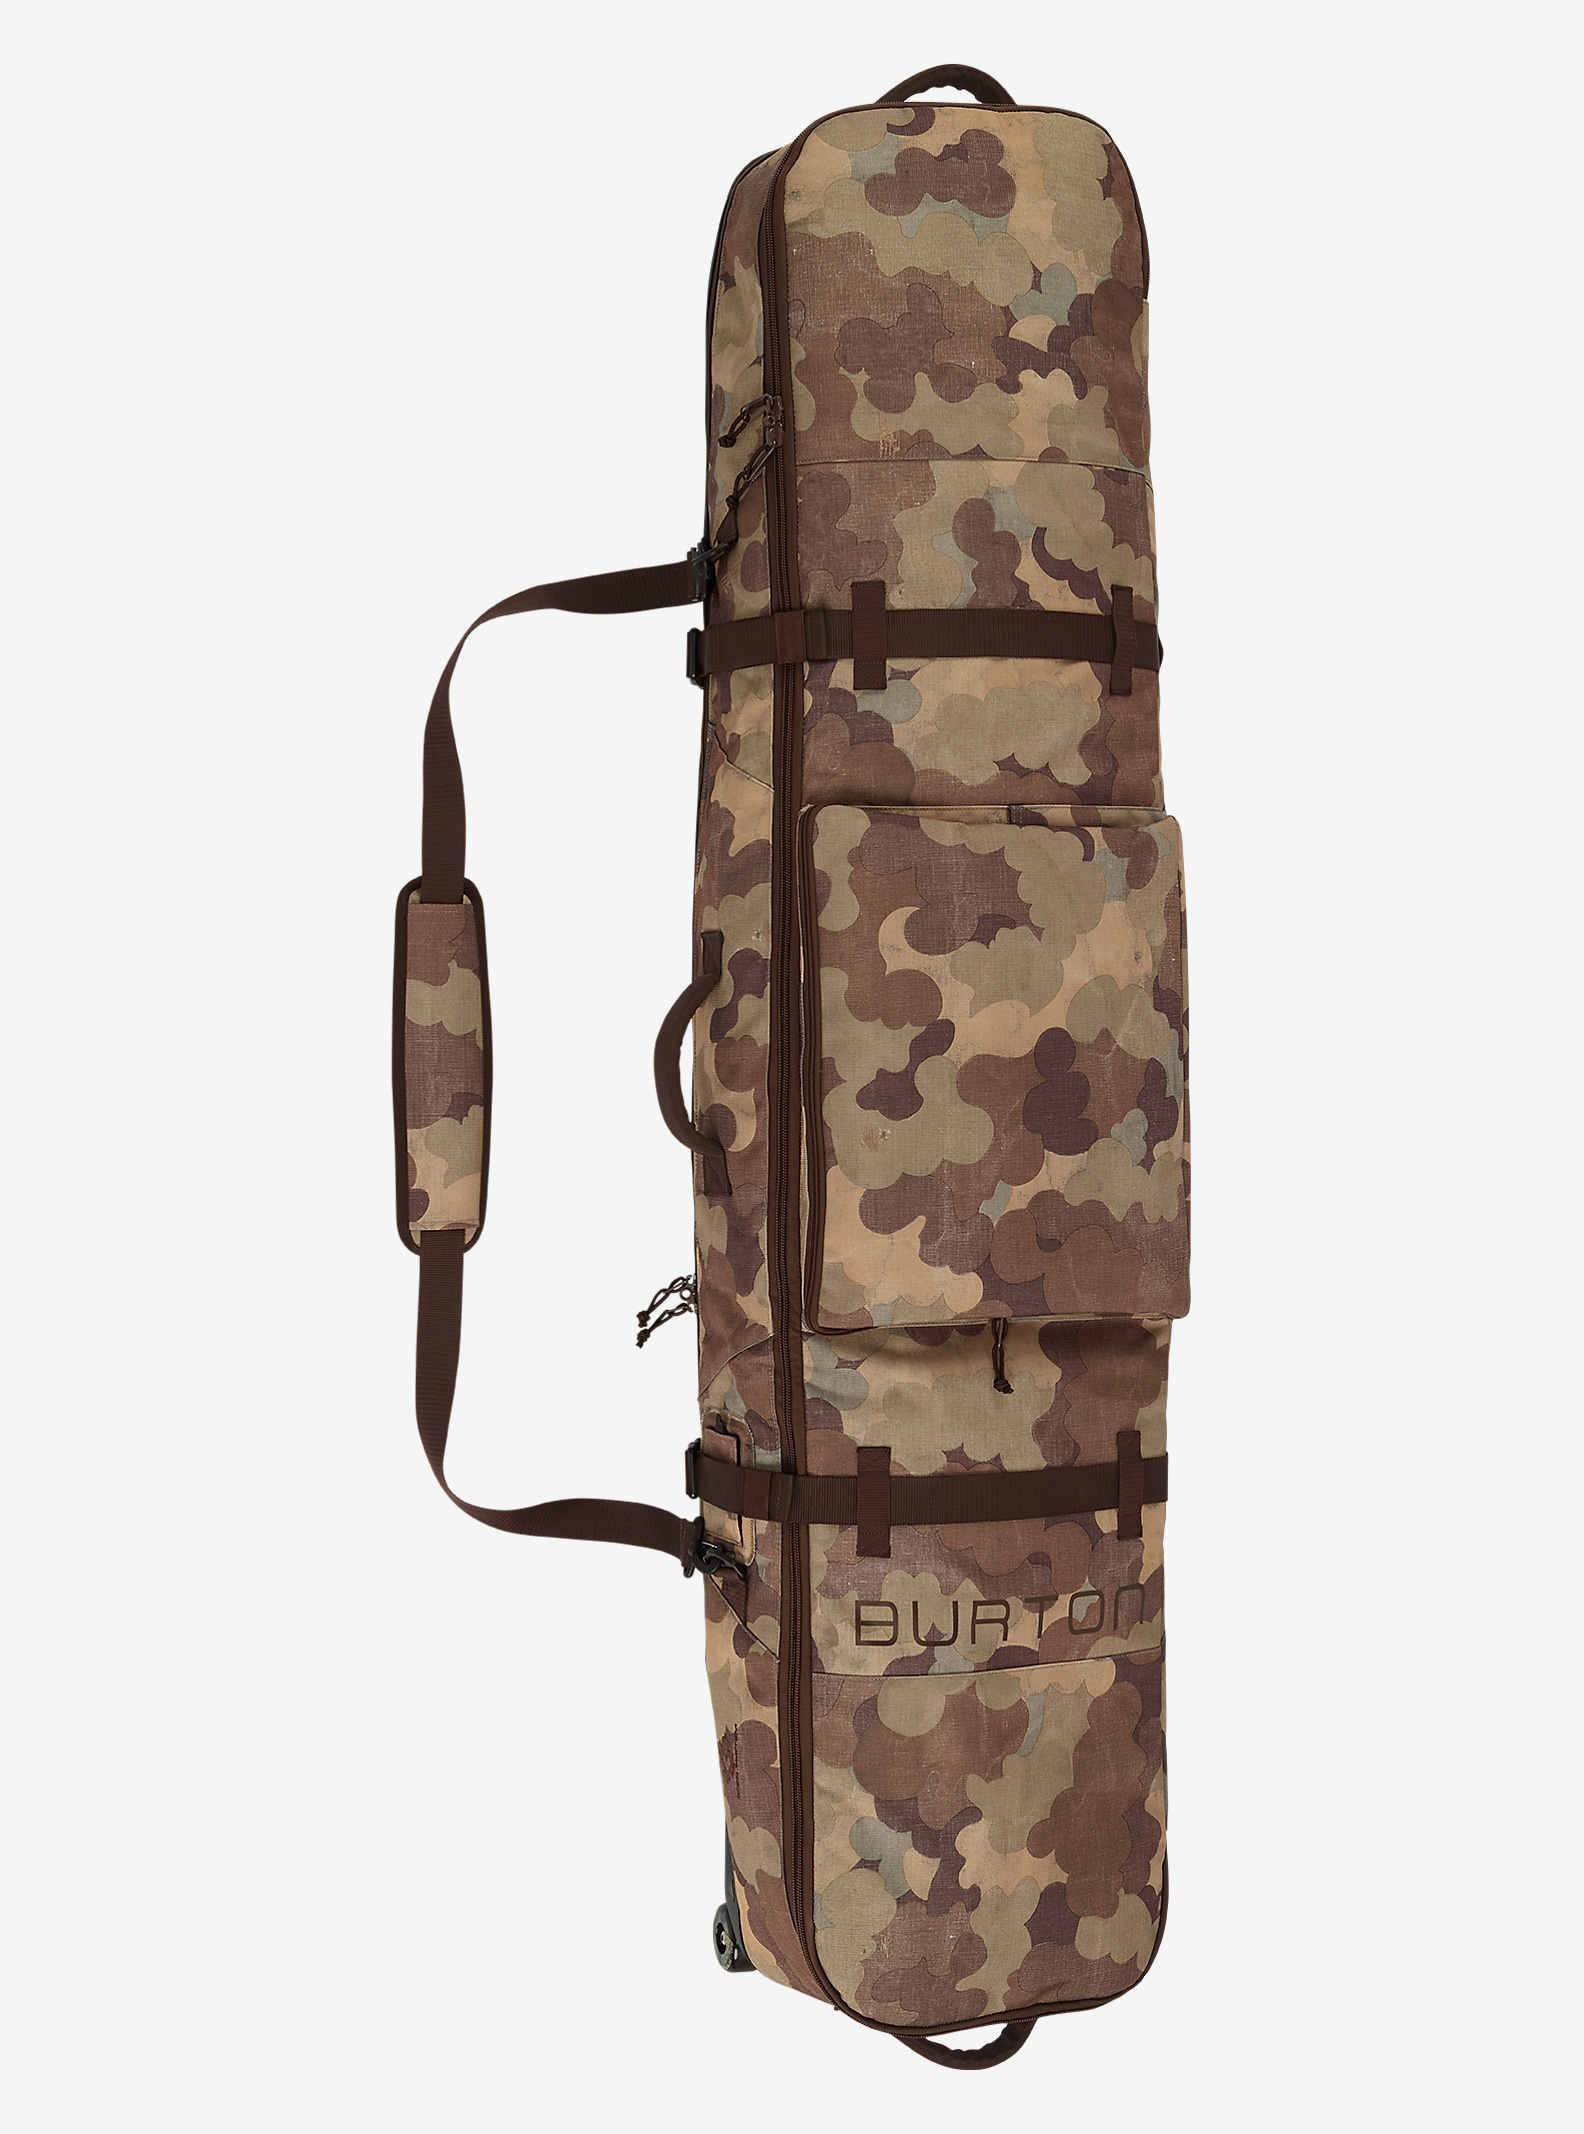 Burton Wheelie Board Case shown in Storm Camo Print